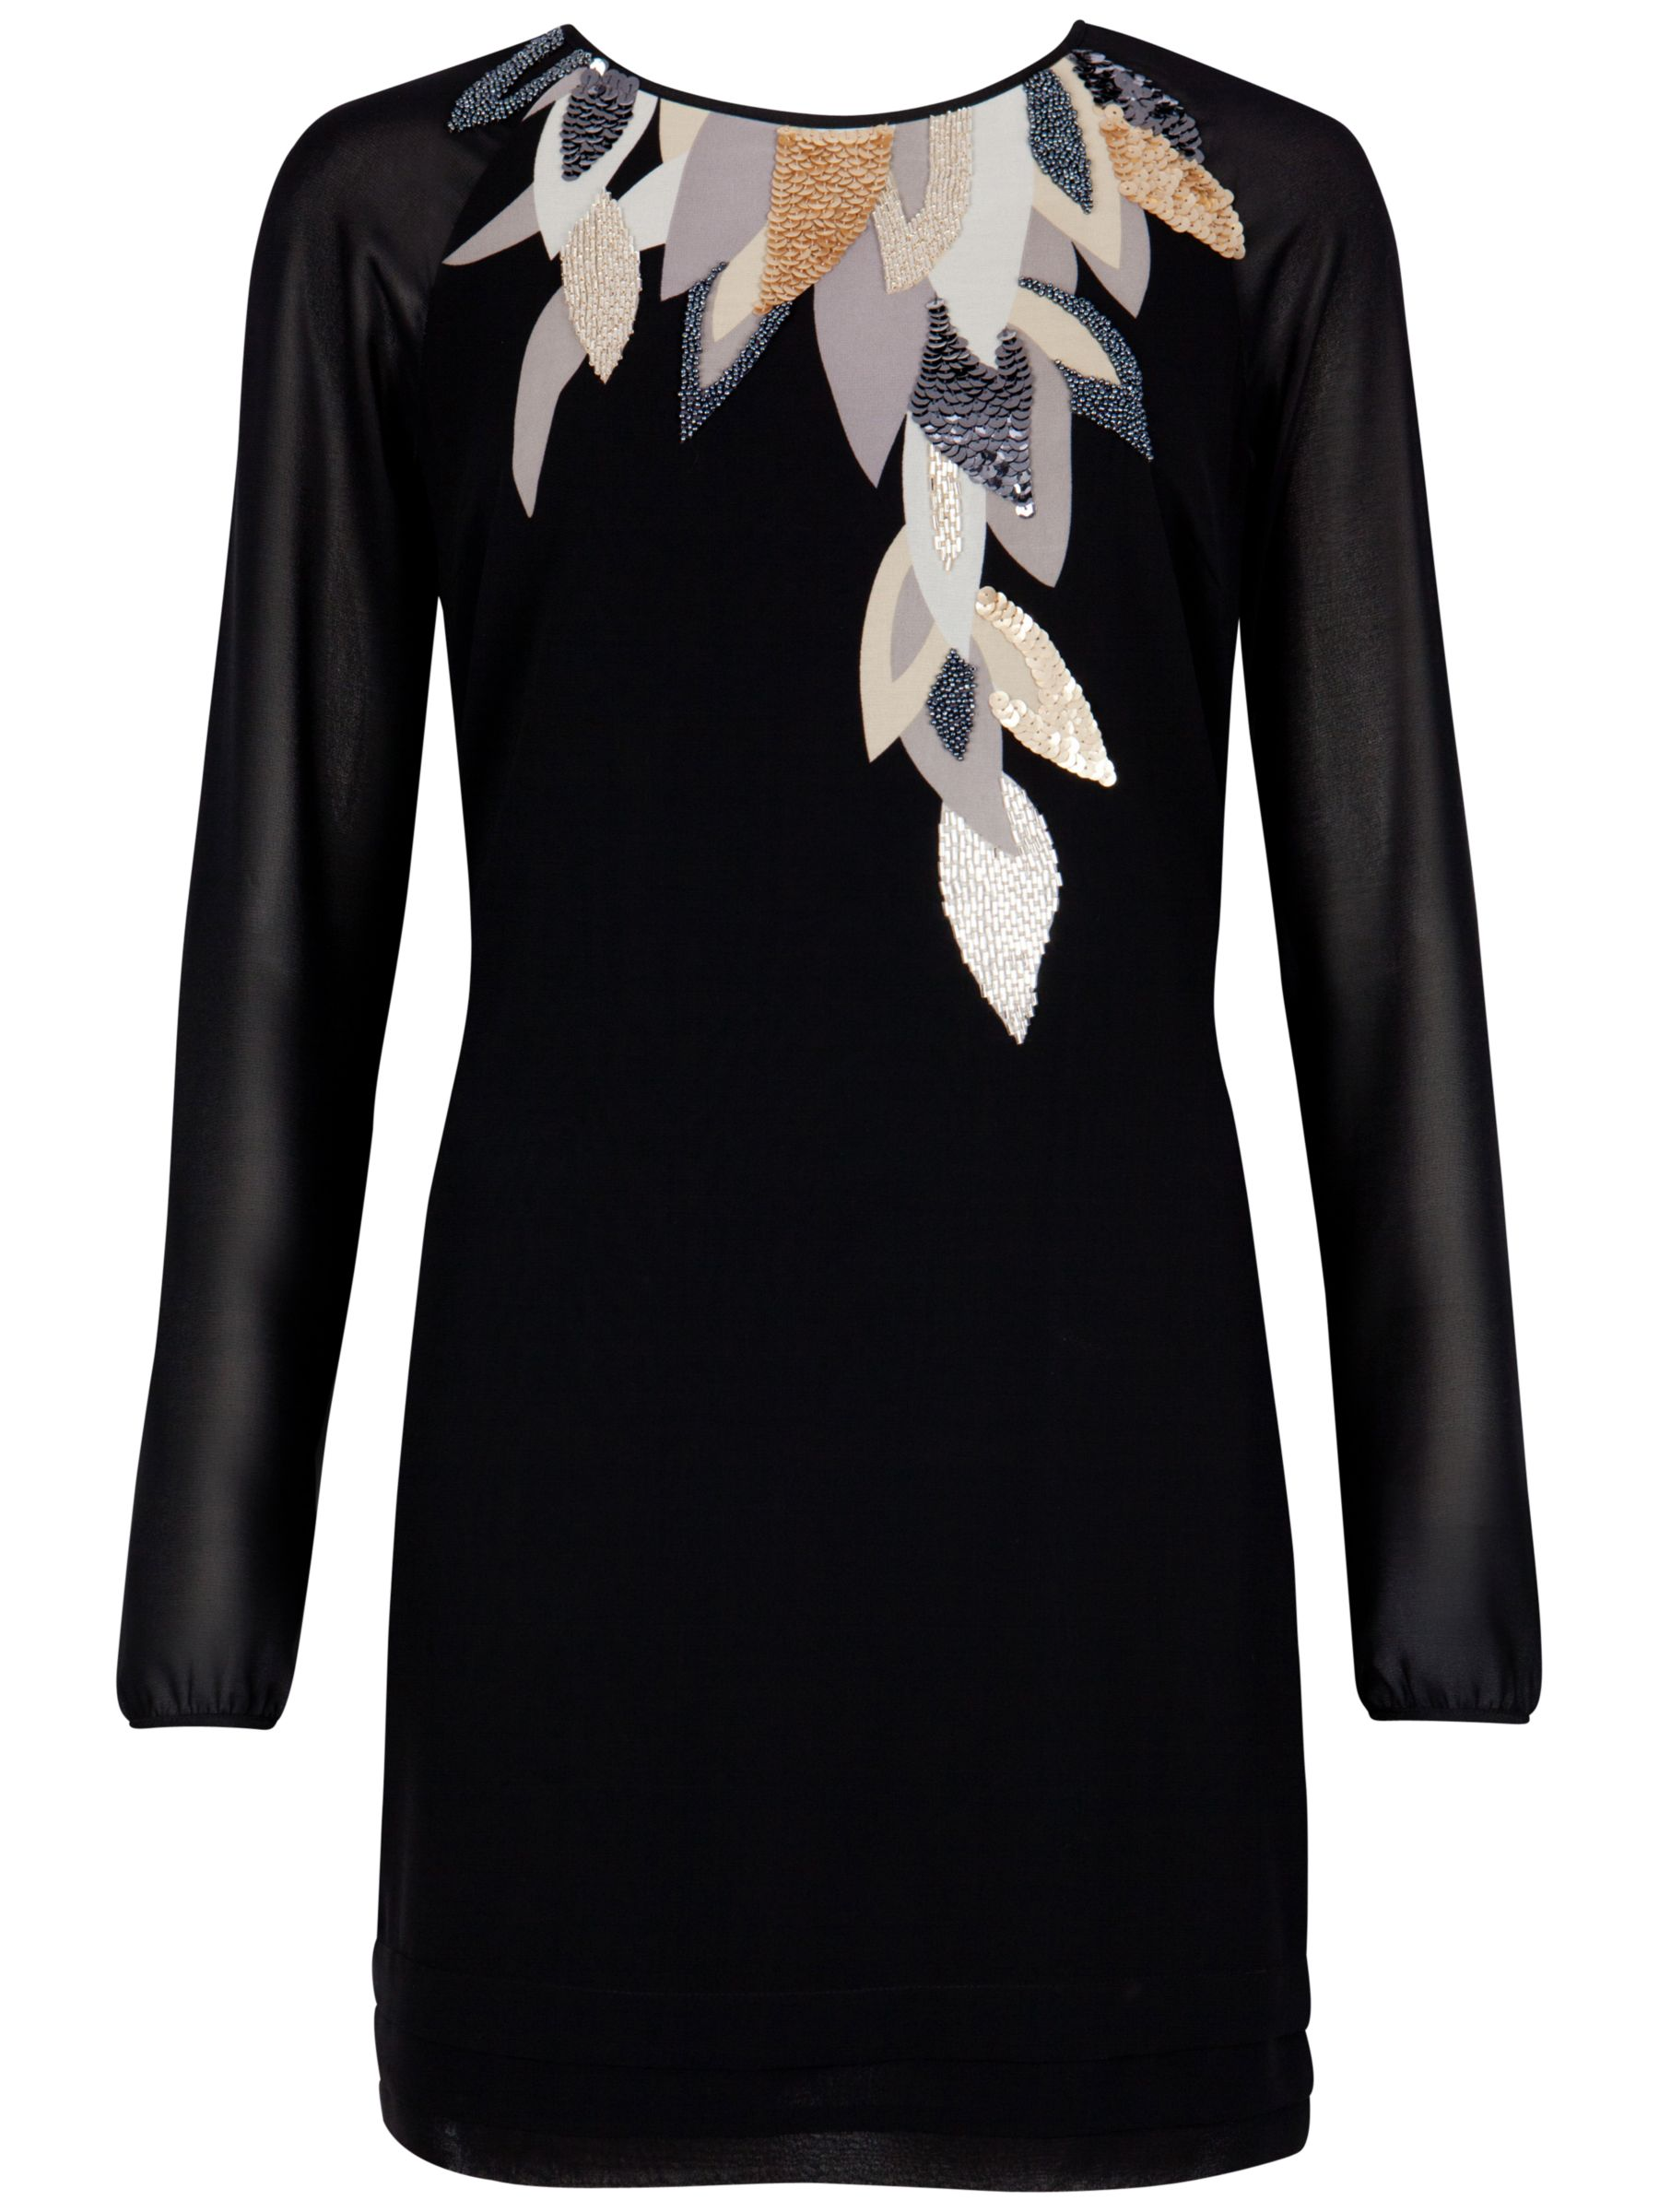 ted baker long sleeve beaded neckline dress, ted, baker, long, sleeve, beaded, neckline, dress, ted baker, black, clearance, womenswear offers, womens dresses offers, women, womens dresses, special offers, fashion magazine, womenswear, men, brands l-z, 1789338